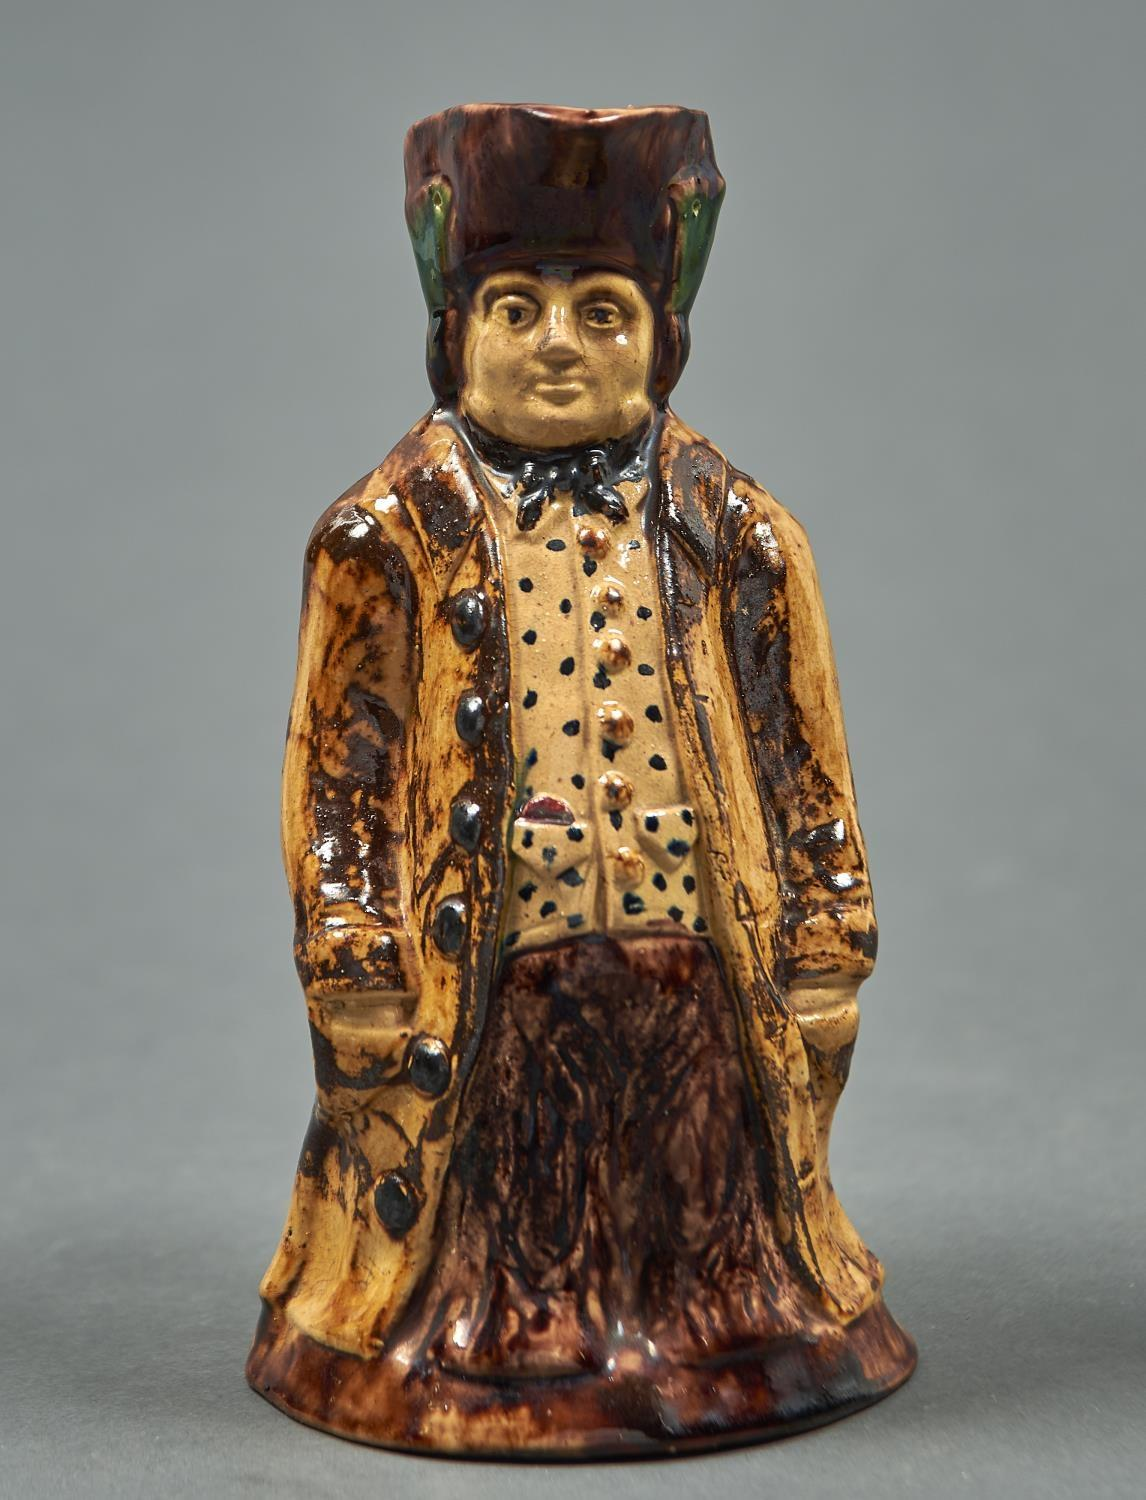 A MANGANESE GLAZED BUFF EARTHENWARE TOBY JUG, MID 19TH C, THE FIGURE STANDING WITH HANDS IN HIS COAT